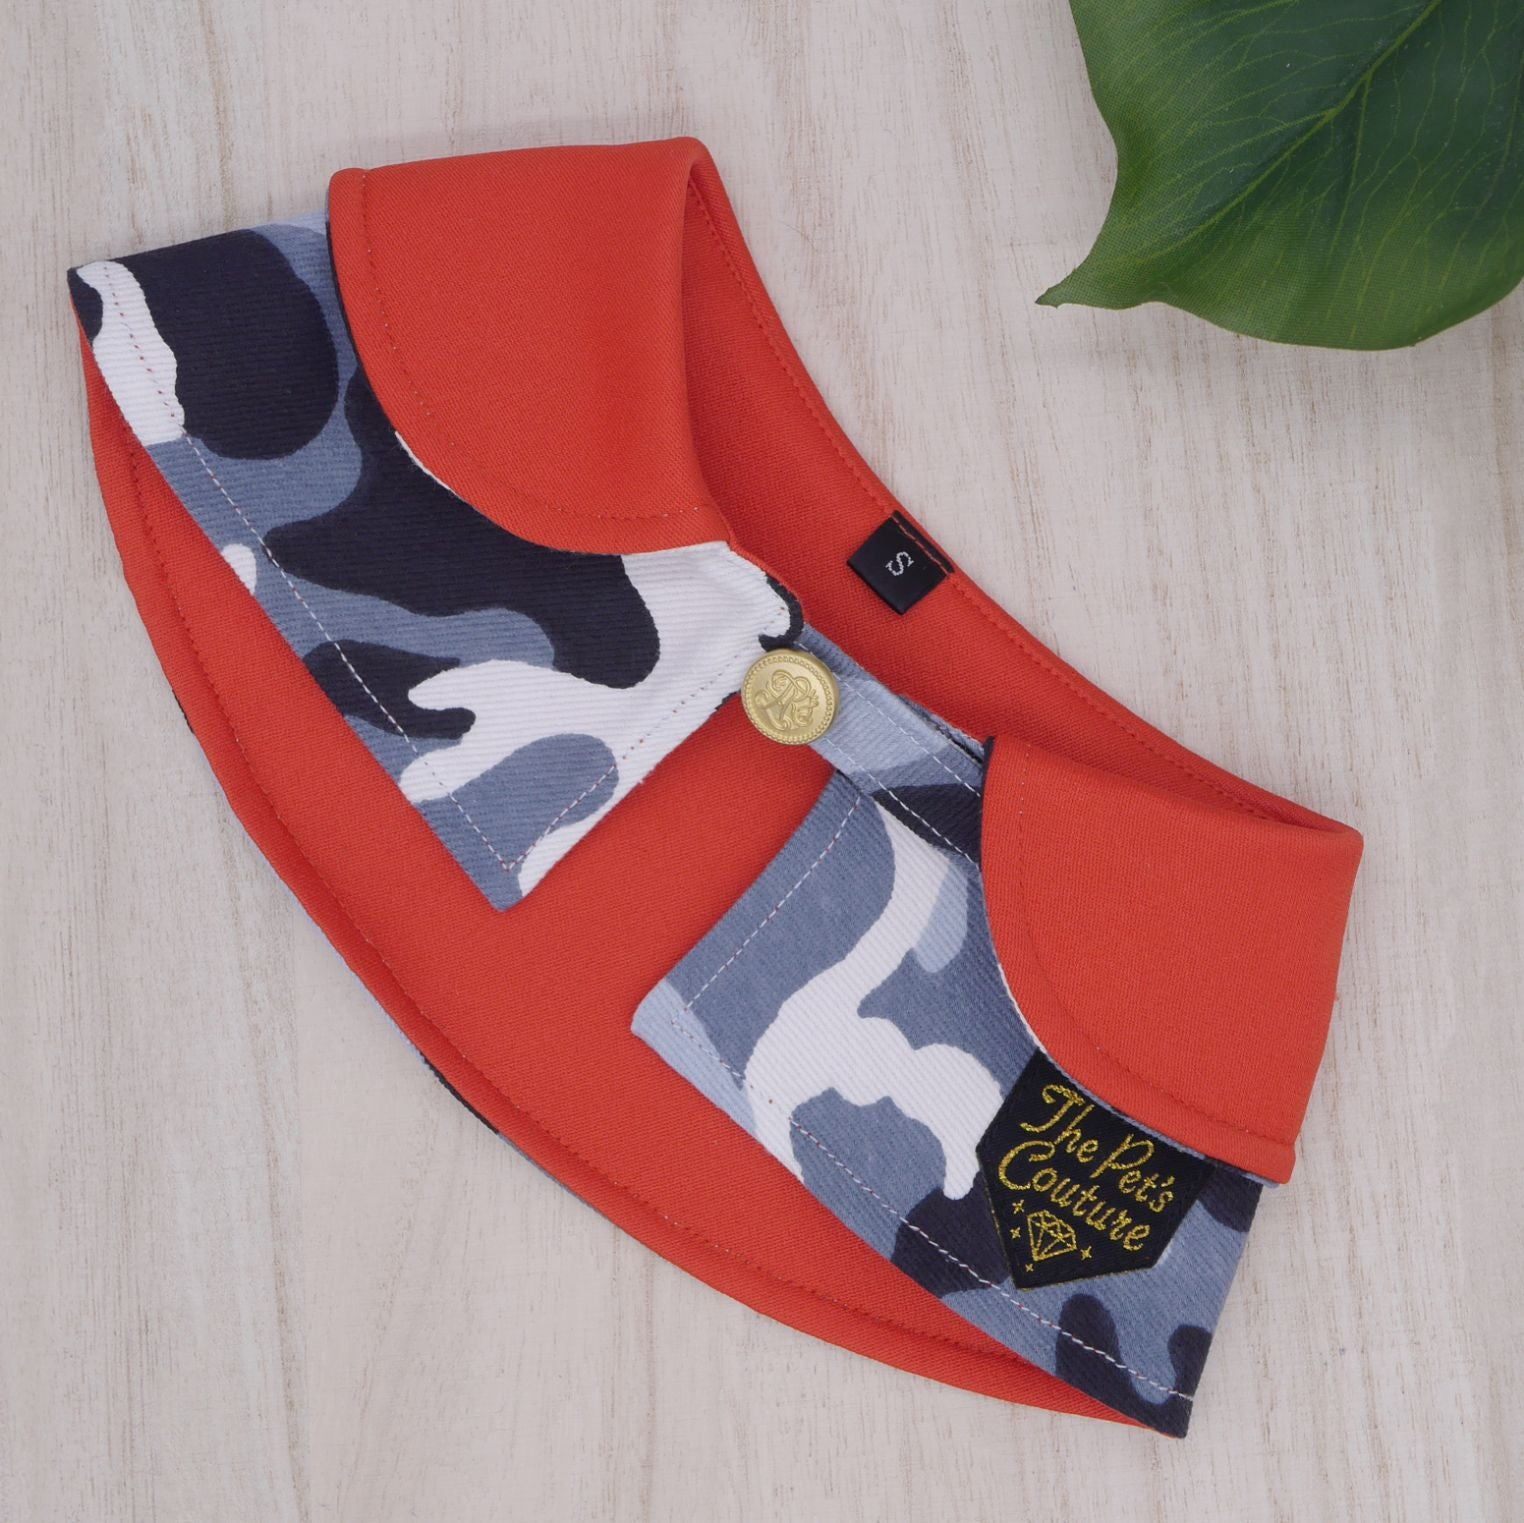 Capes - Urban Ranger (Army Camo) - The Pet's Couture